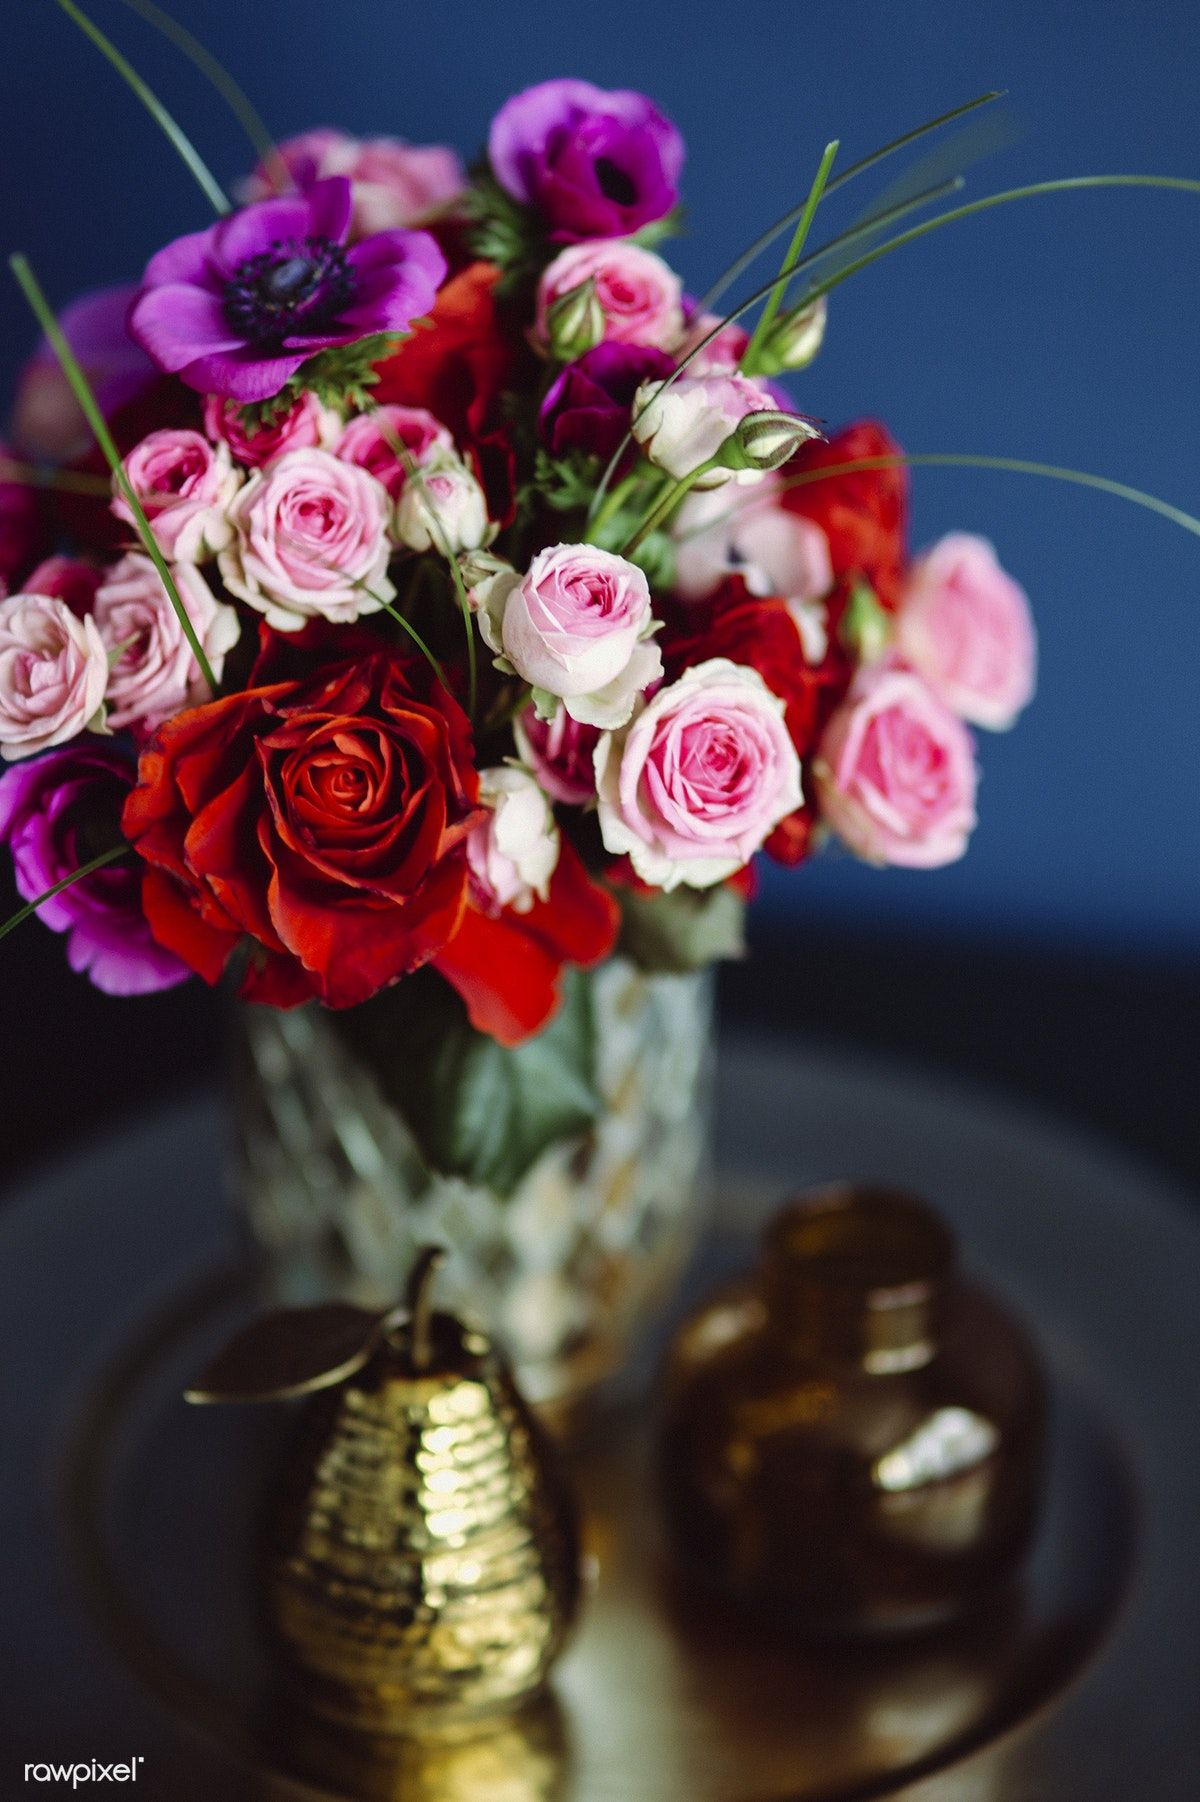 A Beautiful Bouquet Of Flowers Free Image By Rawpixel